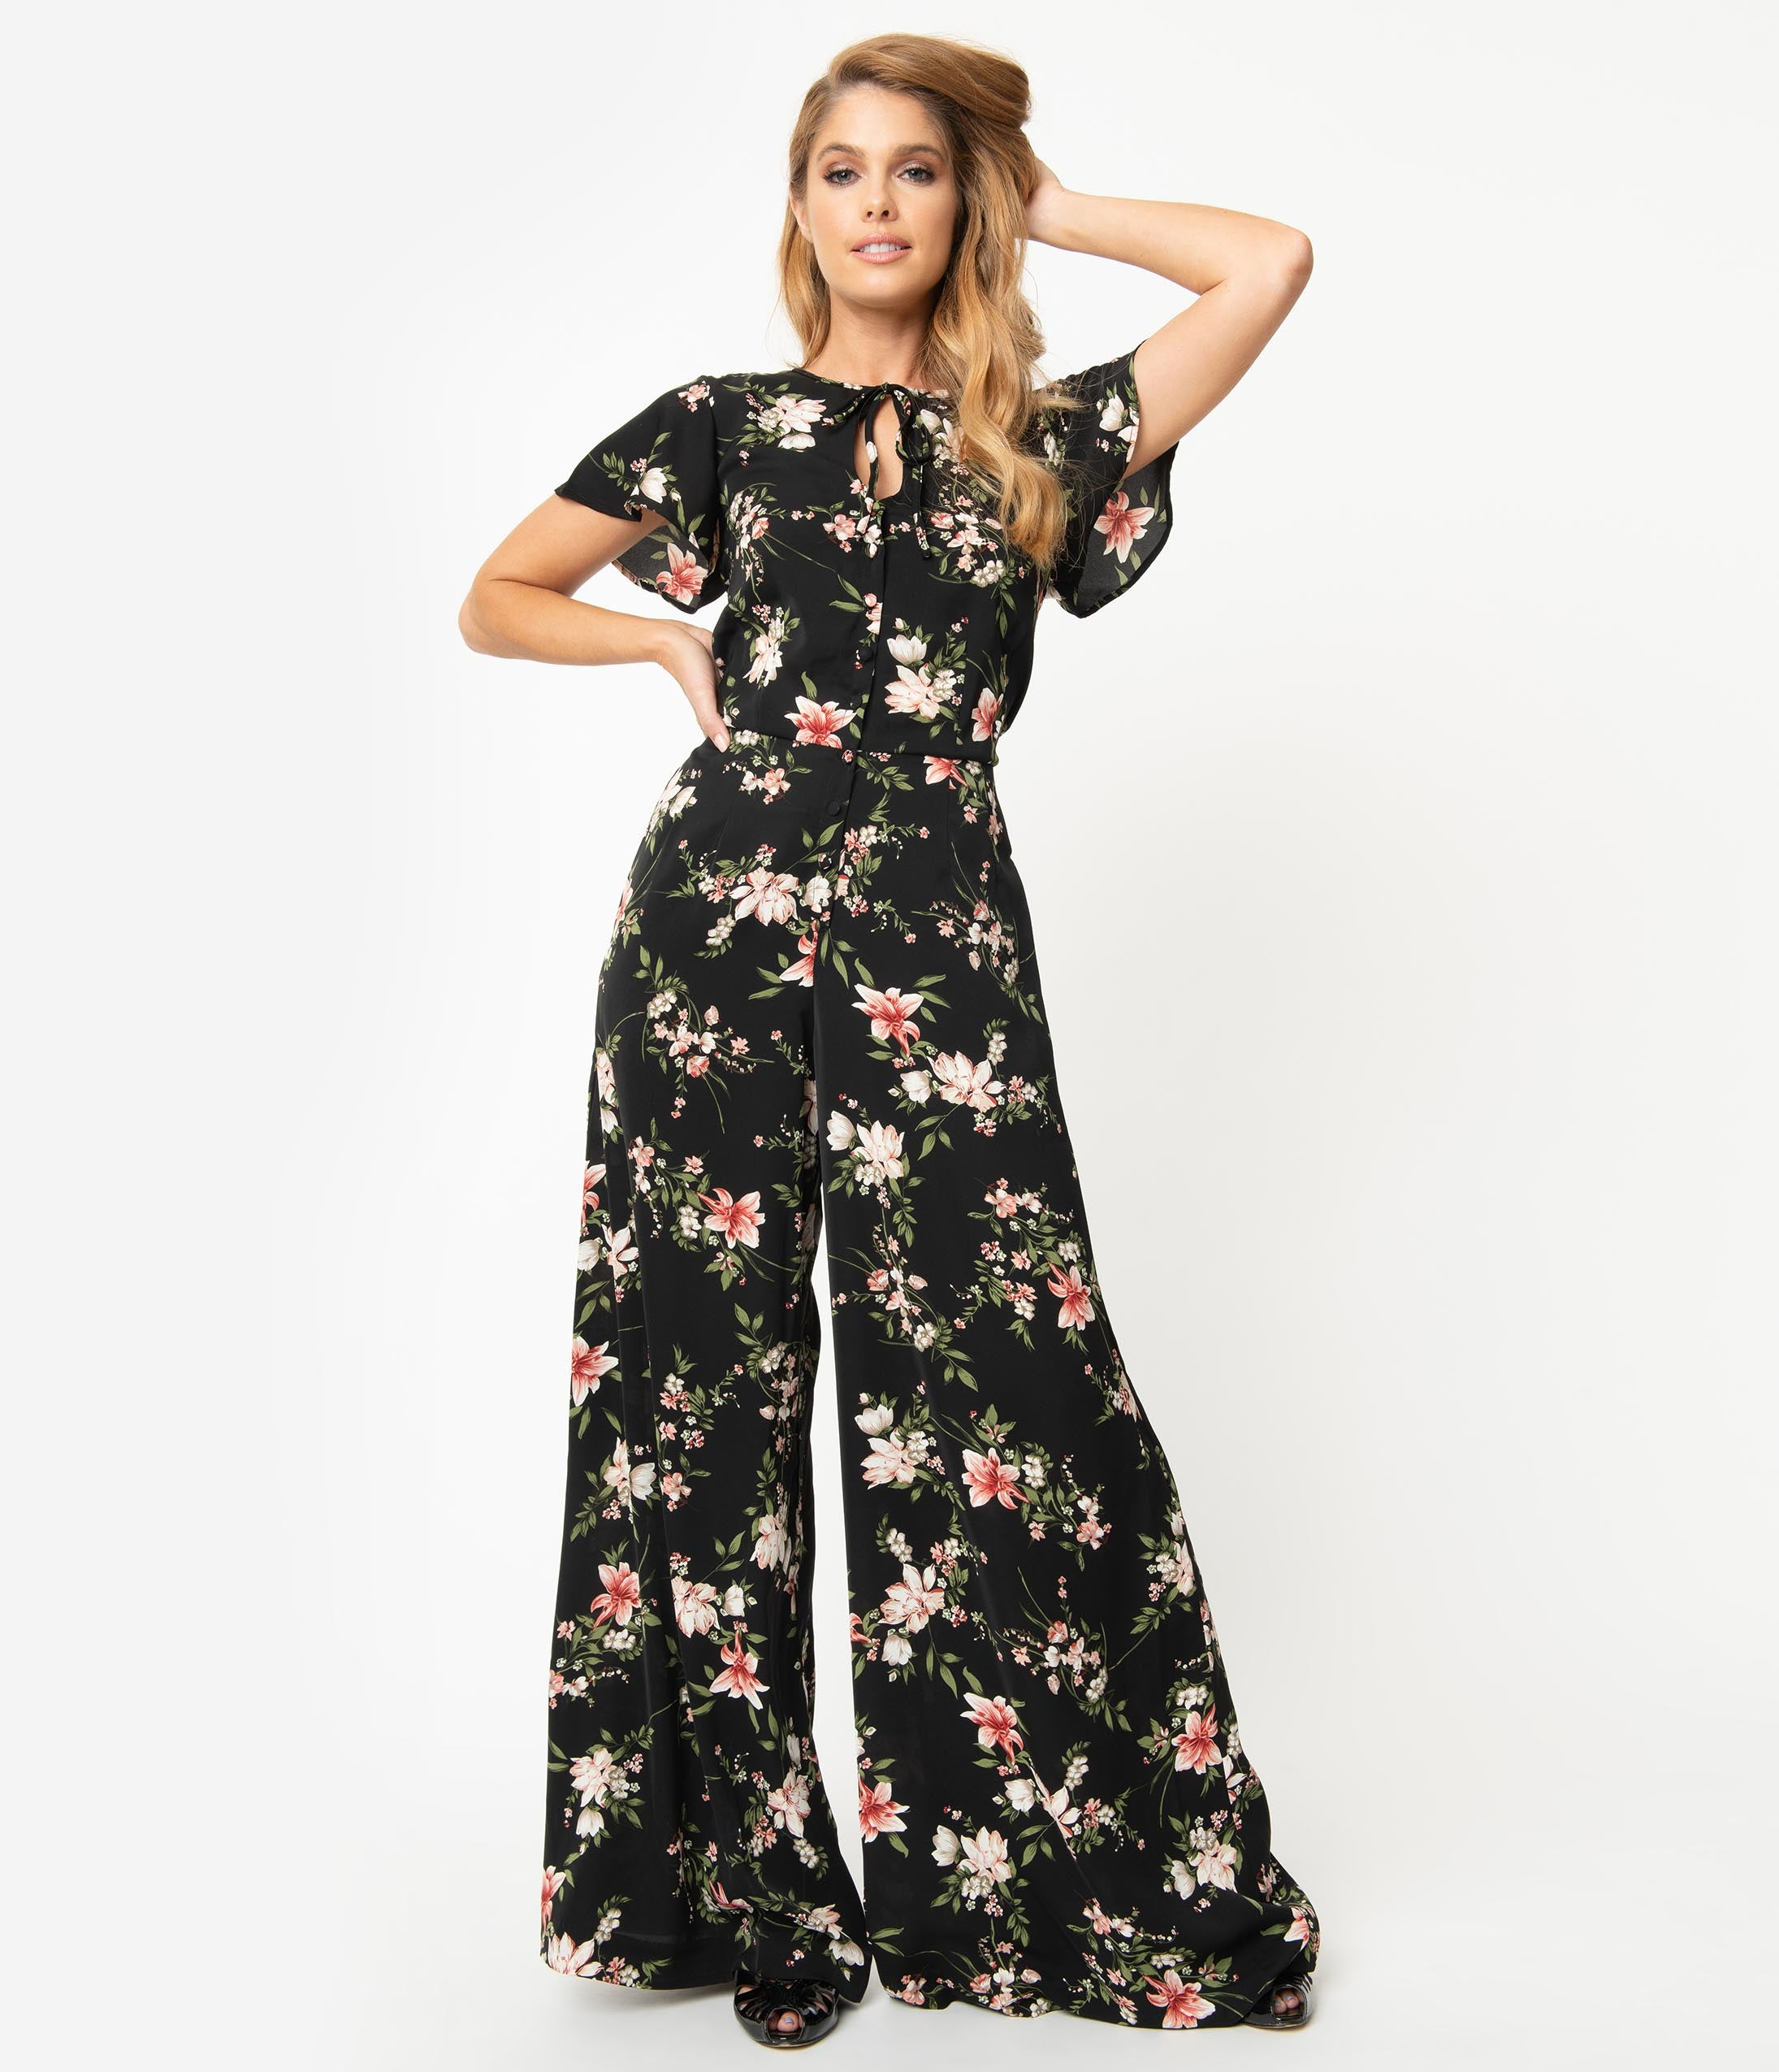 Vintage High Waisted Trousers, Sailor Pants, Jeans Unique Vintage 1960S Black  Pink Floral Orleans Jumpsuit $78.00 AT vintagedancer.com